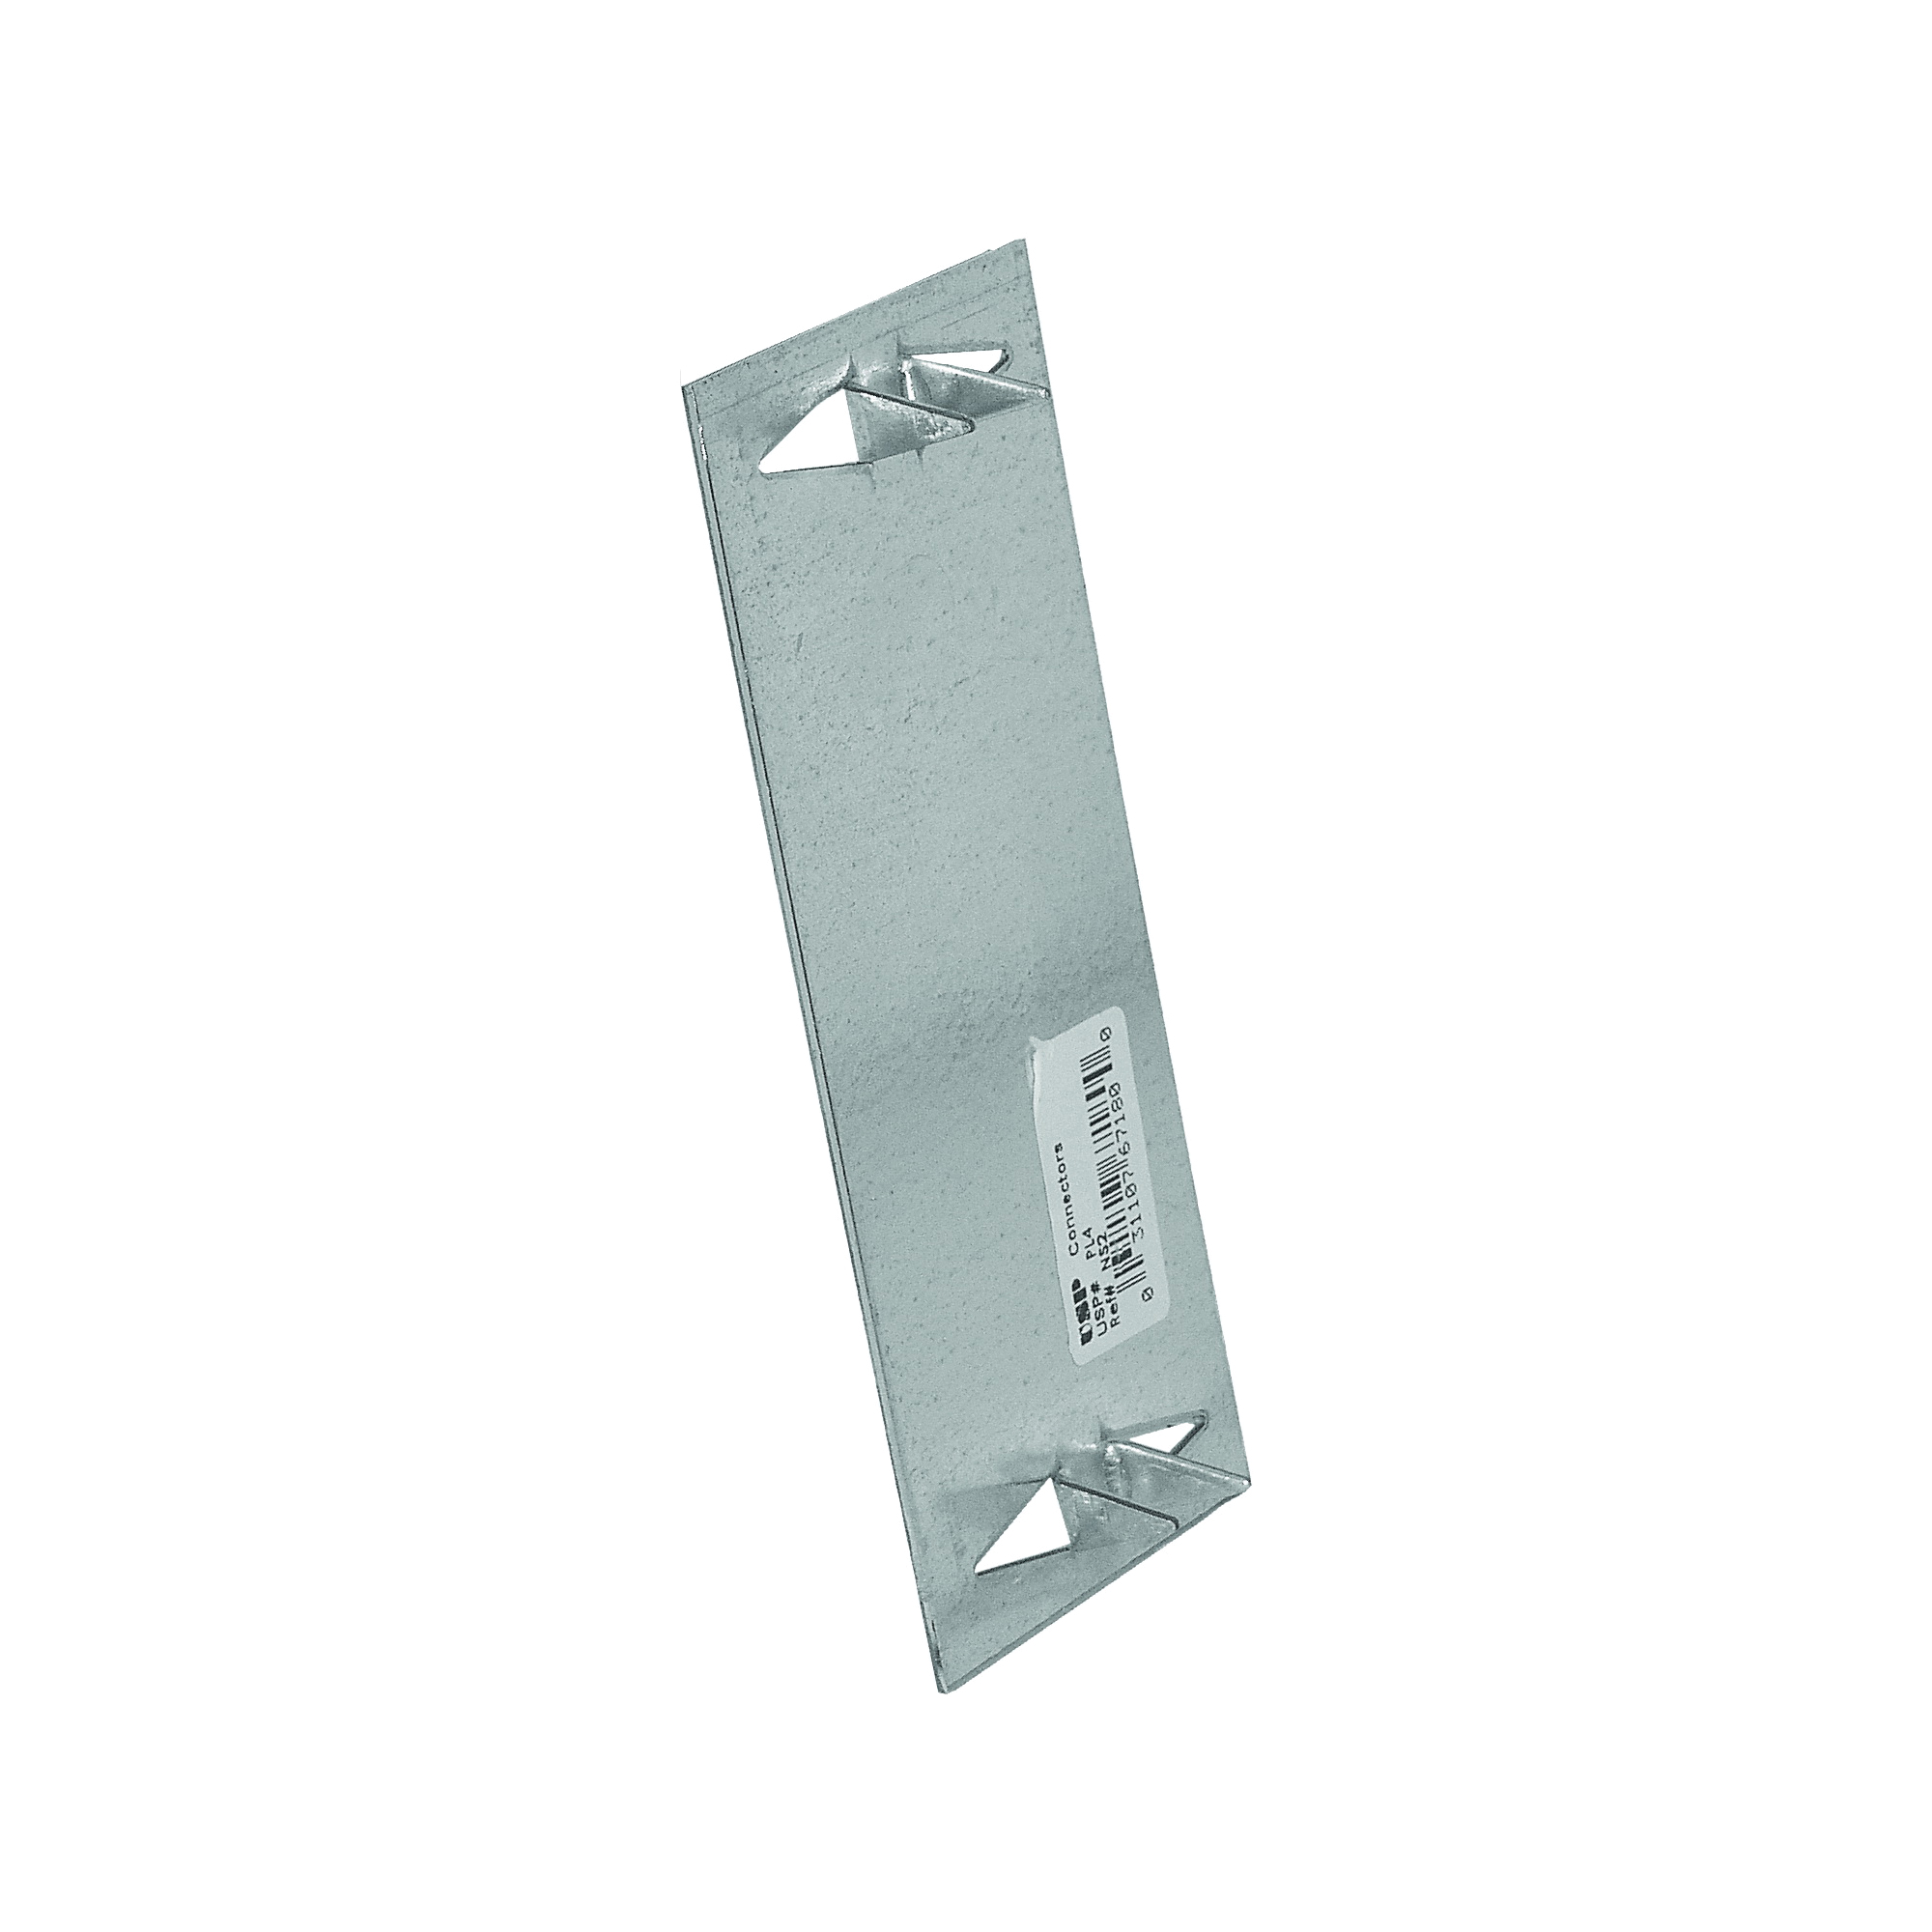 Picture of MiTek PL Series PL4 Protection Plate, 5 in L, 2 in W, 1/16 in Thick, Galvanized Steel